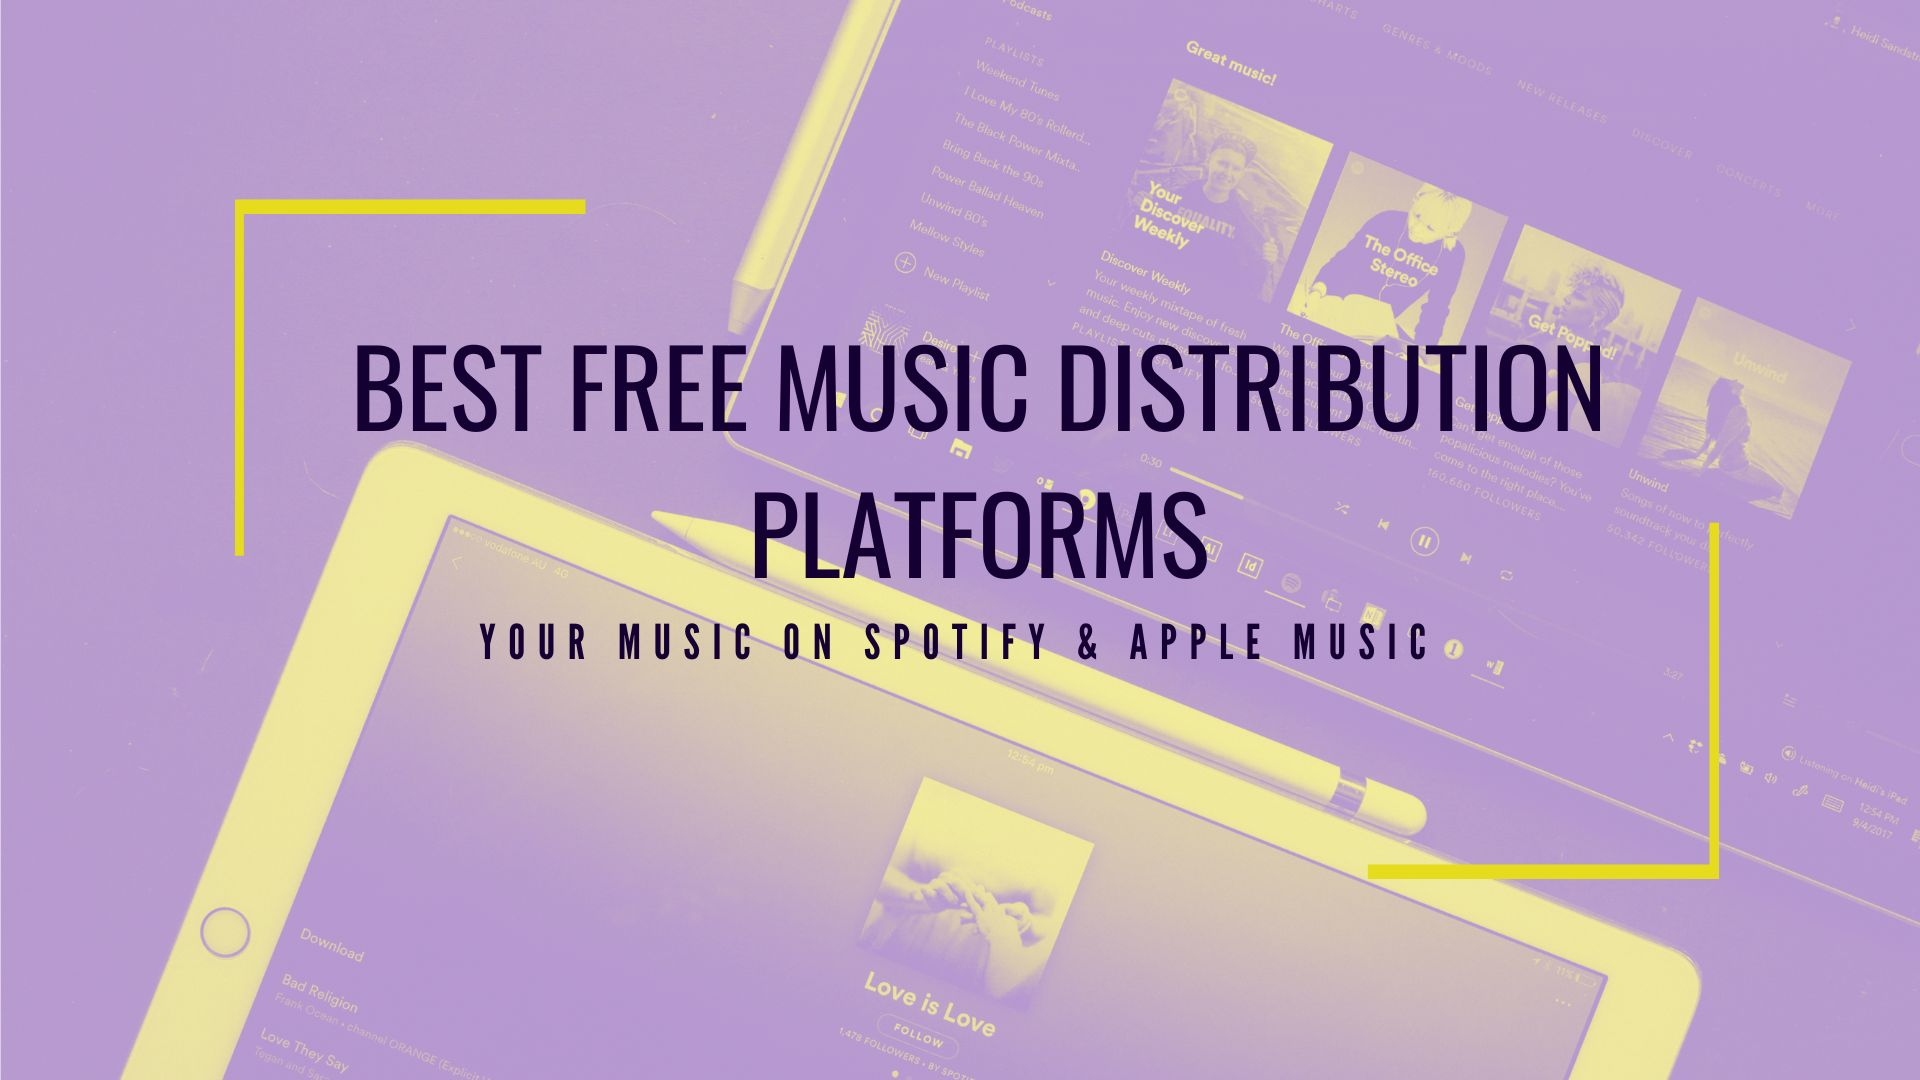 How to get music on Spotify for free? The music Aggregator check! Distrokid, Routenote, Soundbetter